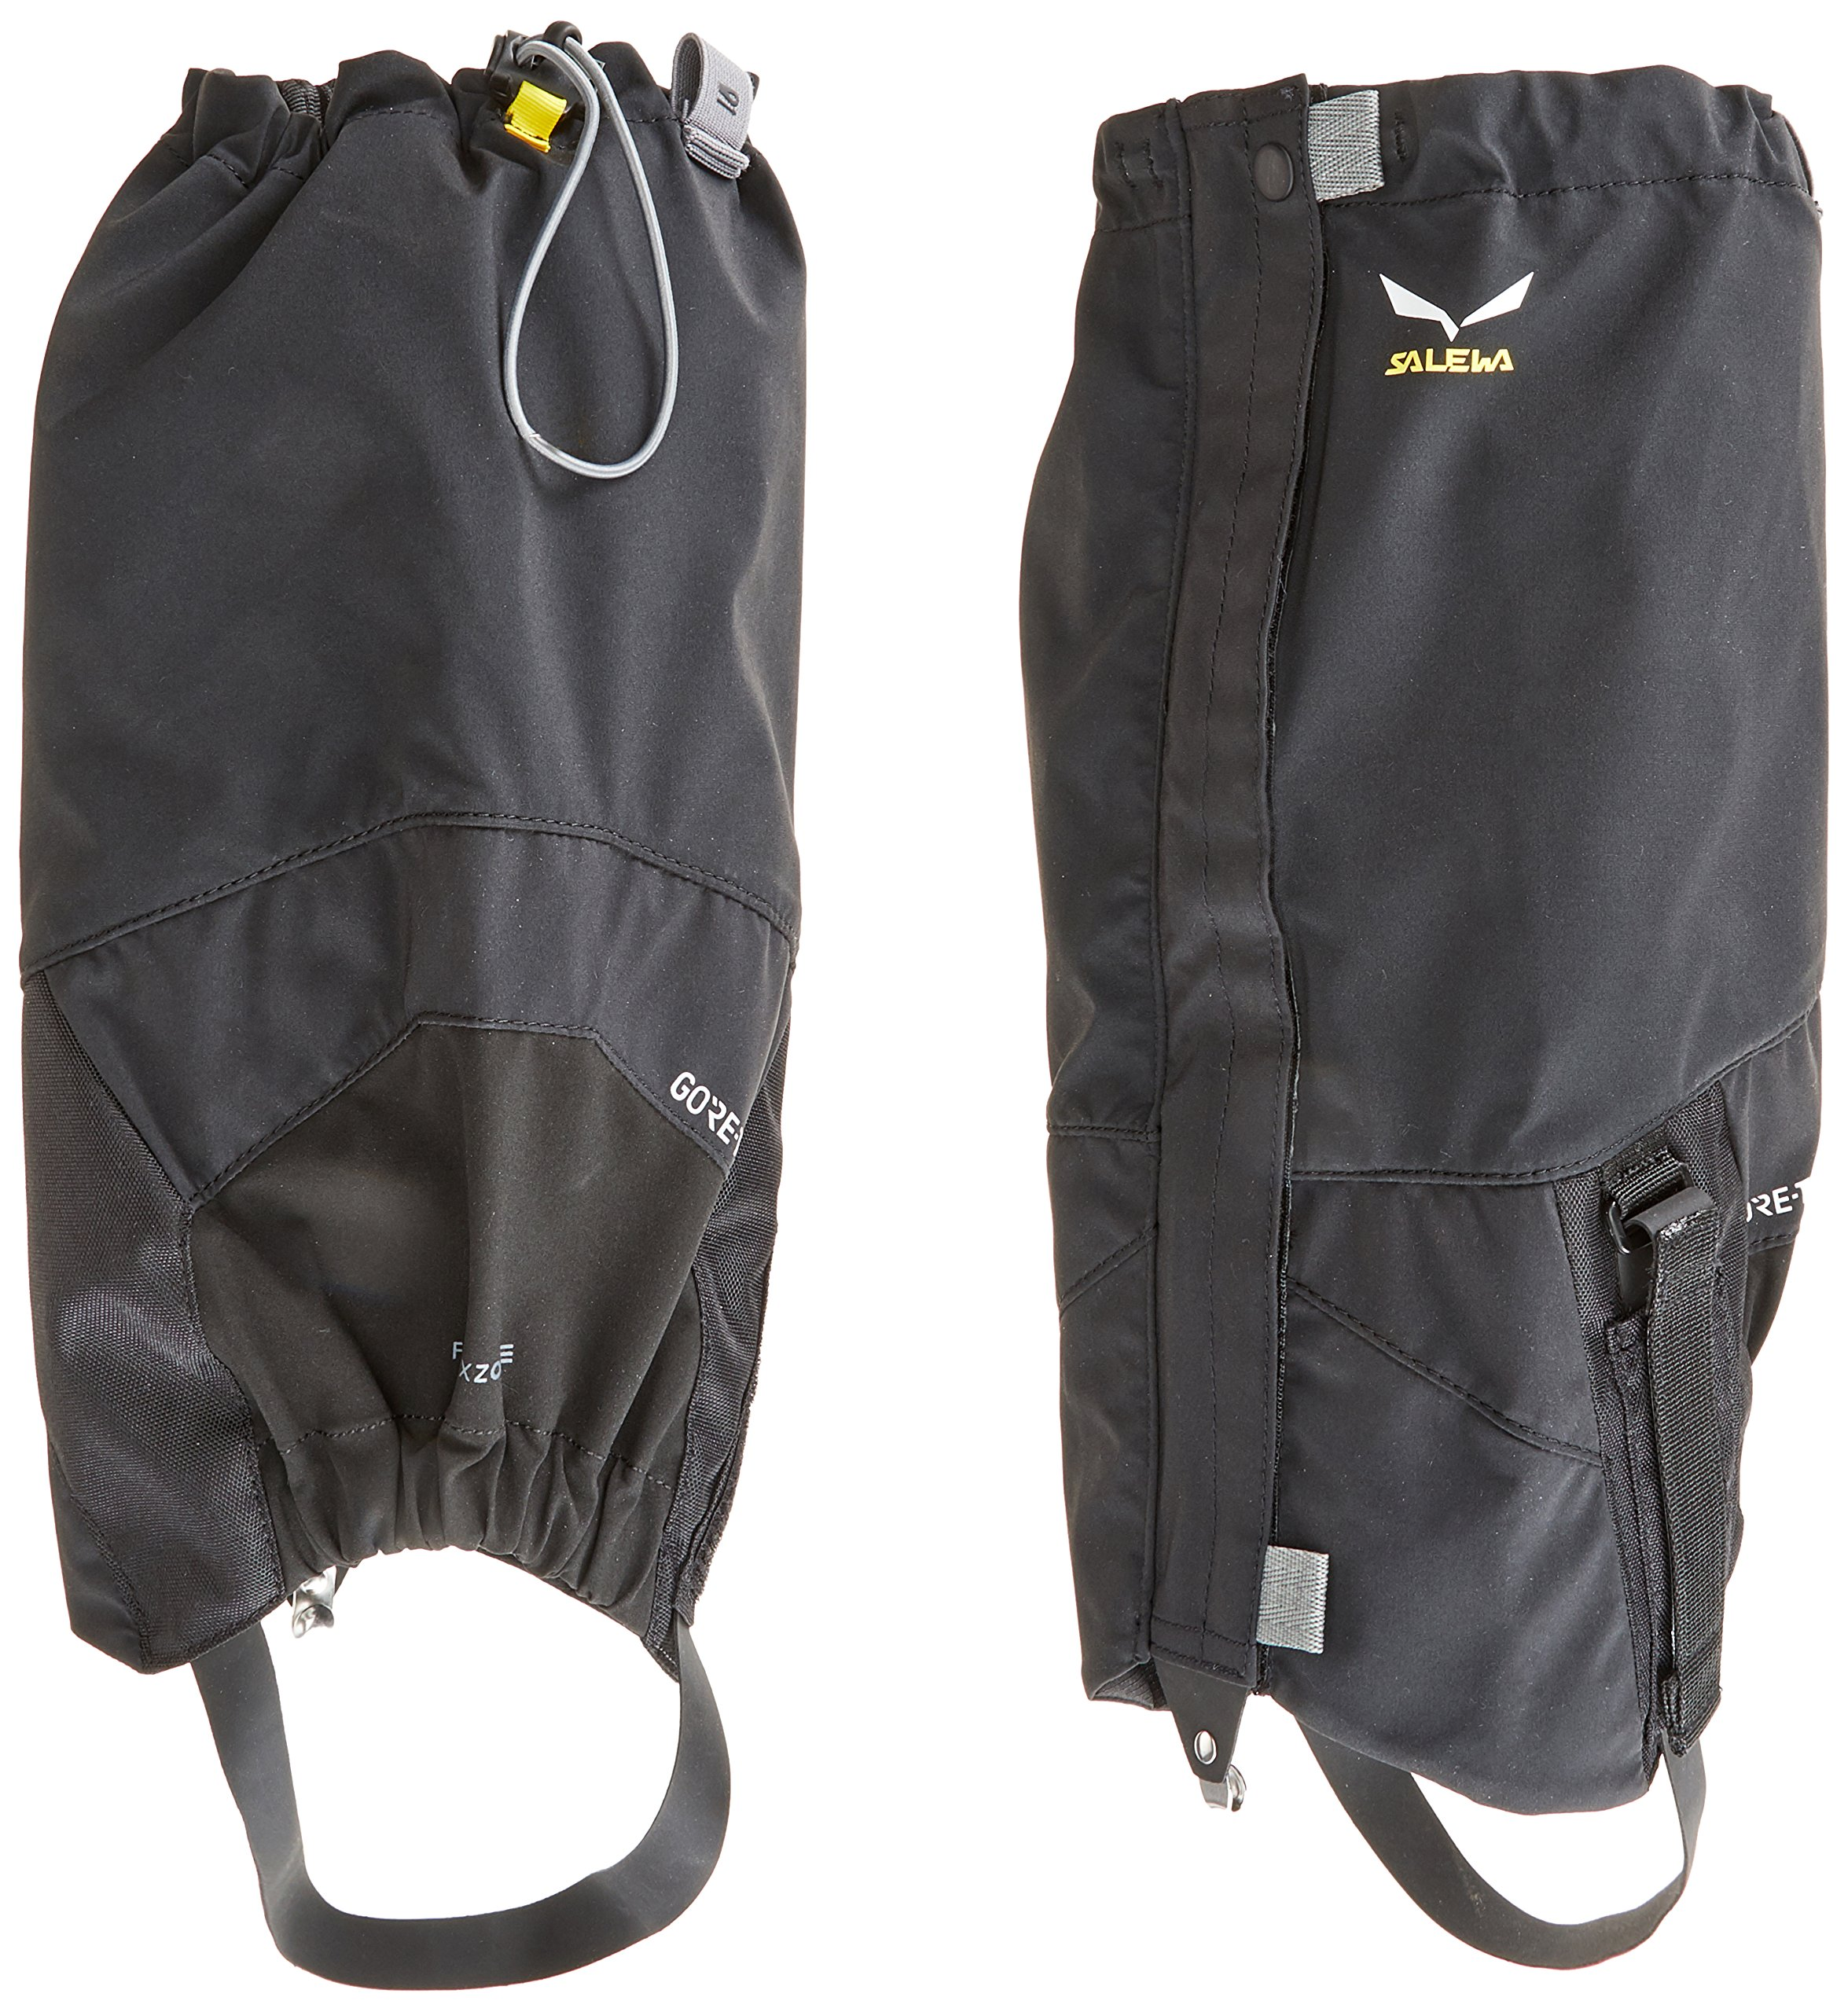 91kSiU0uciL - Salewa Protection Adult Boots GTX Gaiter